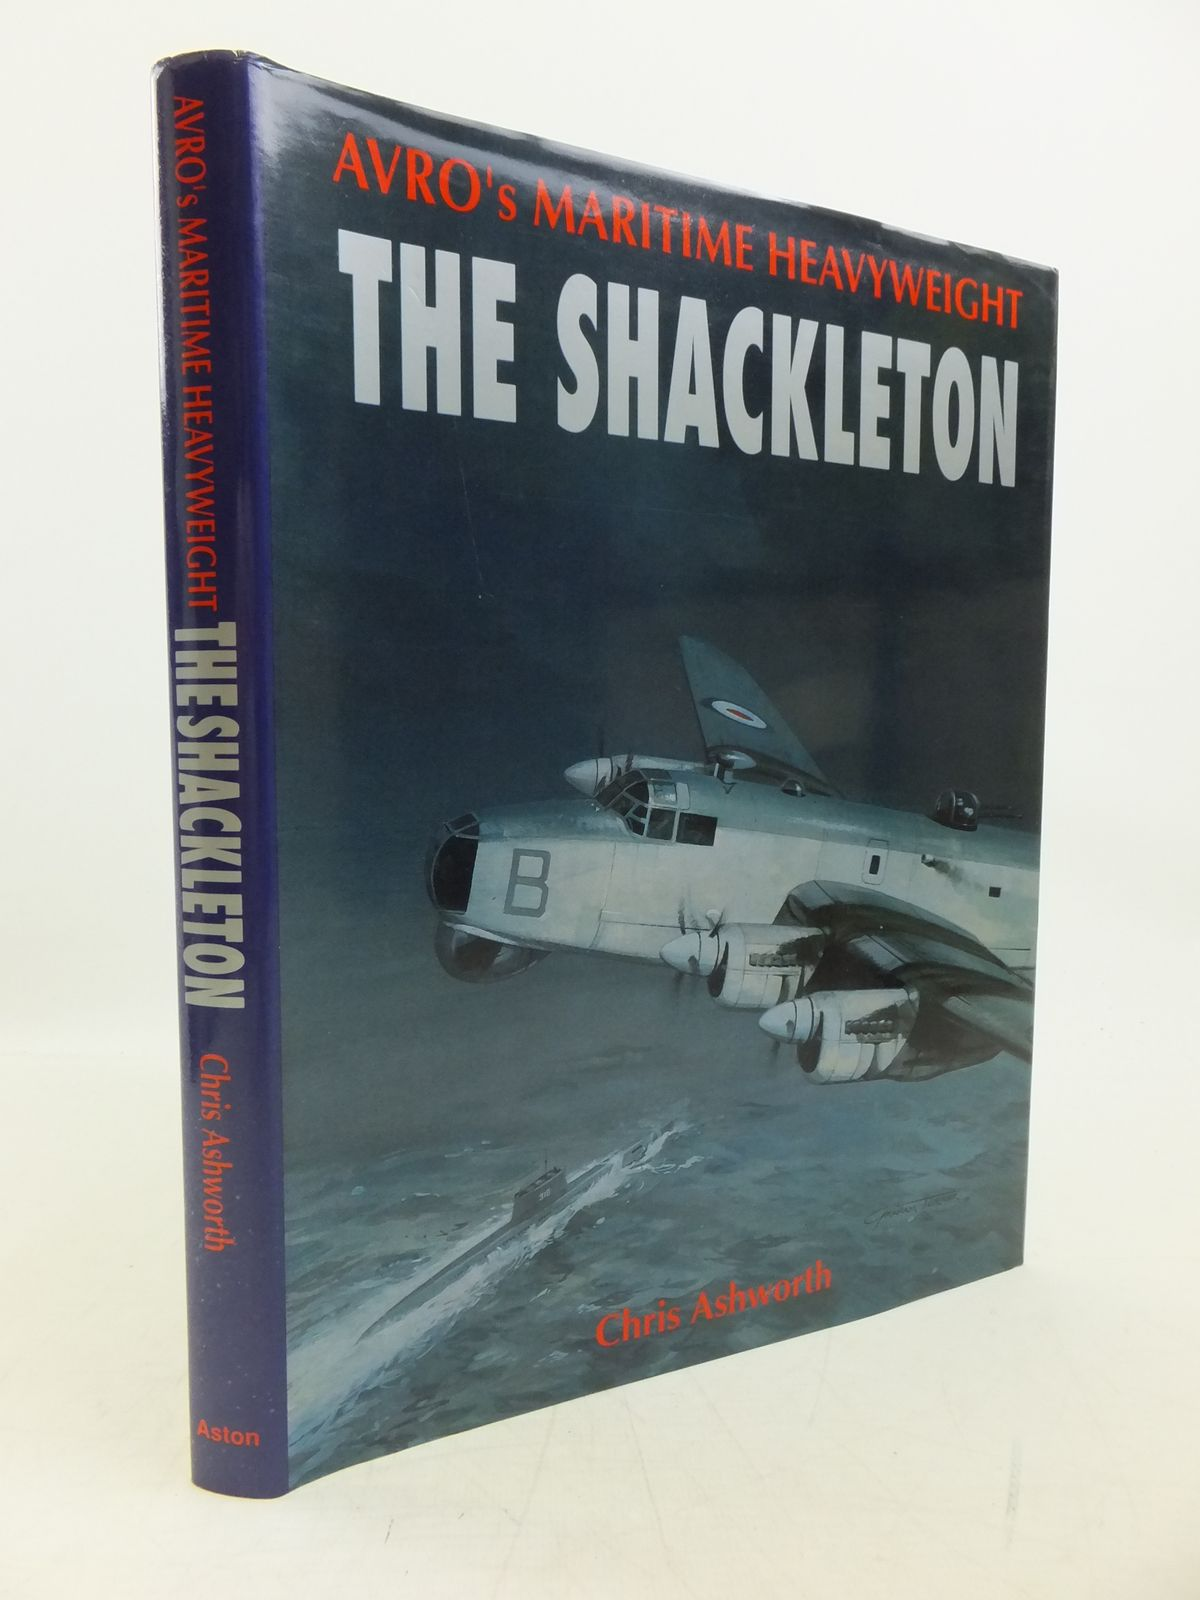 Photo of AVRO'S MARITIME HEAVYWEIGHT: THE SHACKLETON written by Ashworth, Chris published by Aston Publications (STOCK CODE: 2120234)  for sale by Stella & Rose's Books